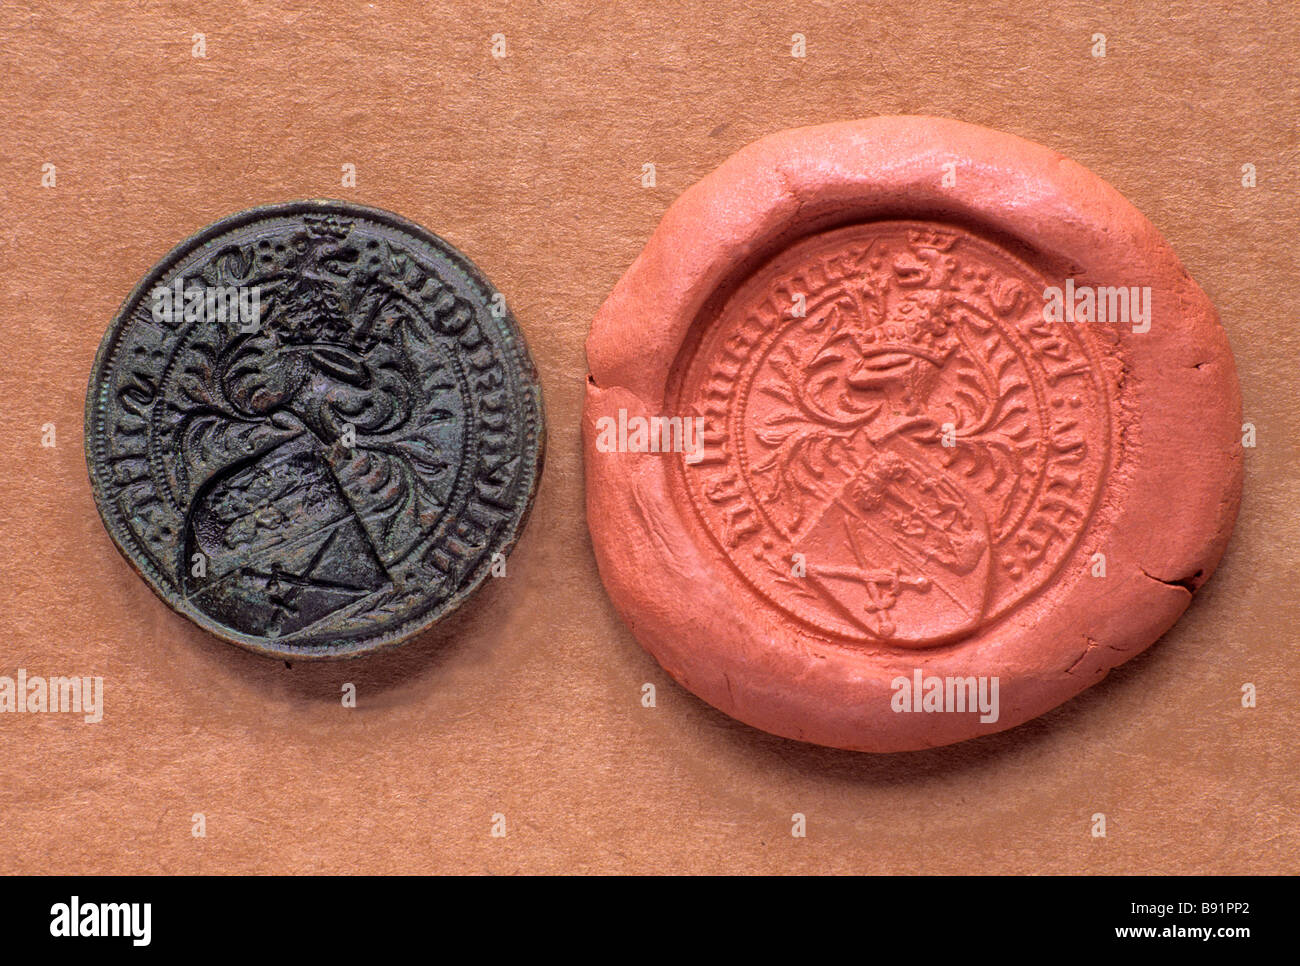 Medieval Seal Matrix and Wax Impression 15th century artefact metal detecting find copper brass England UK - Stock Image